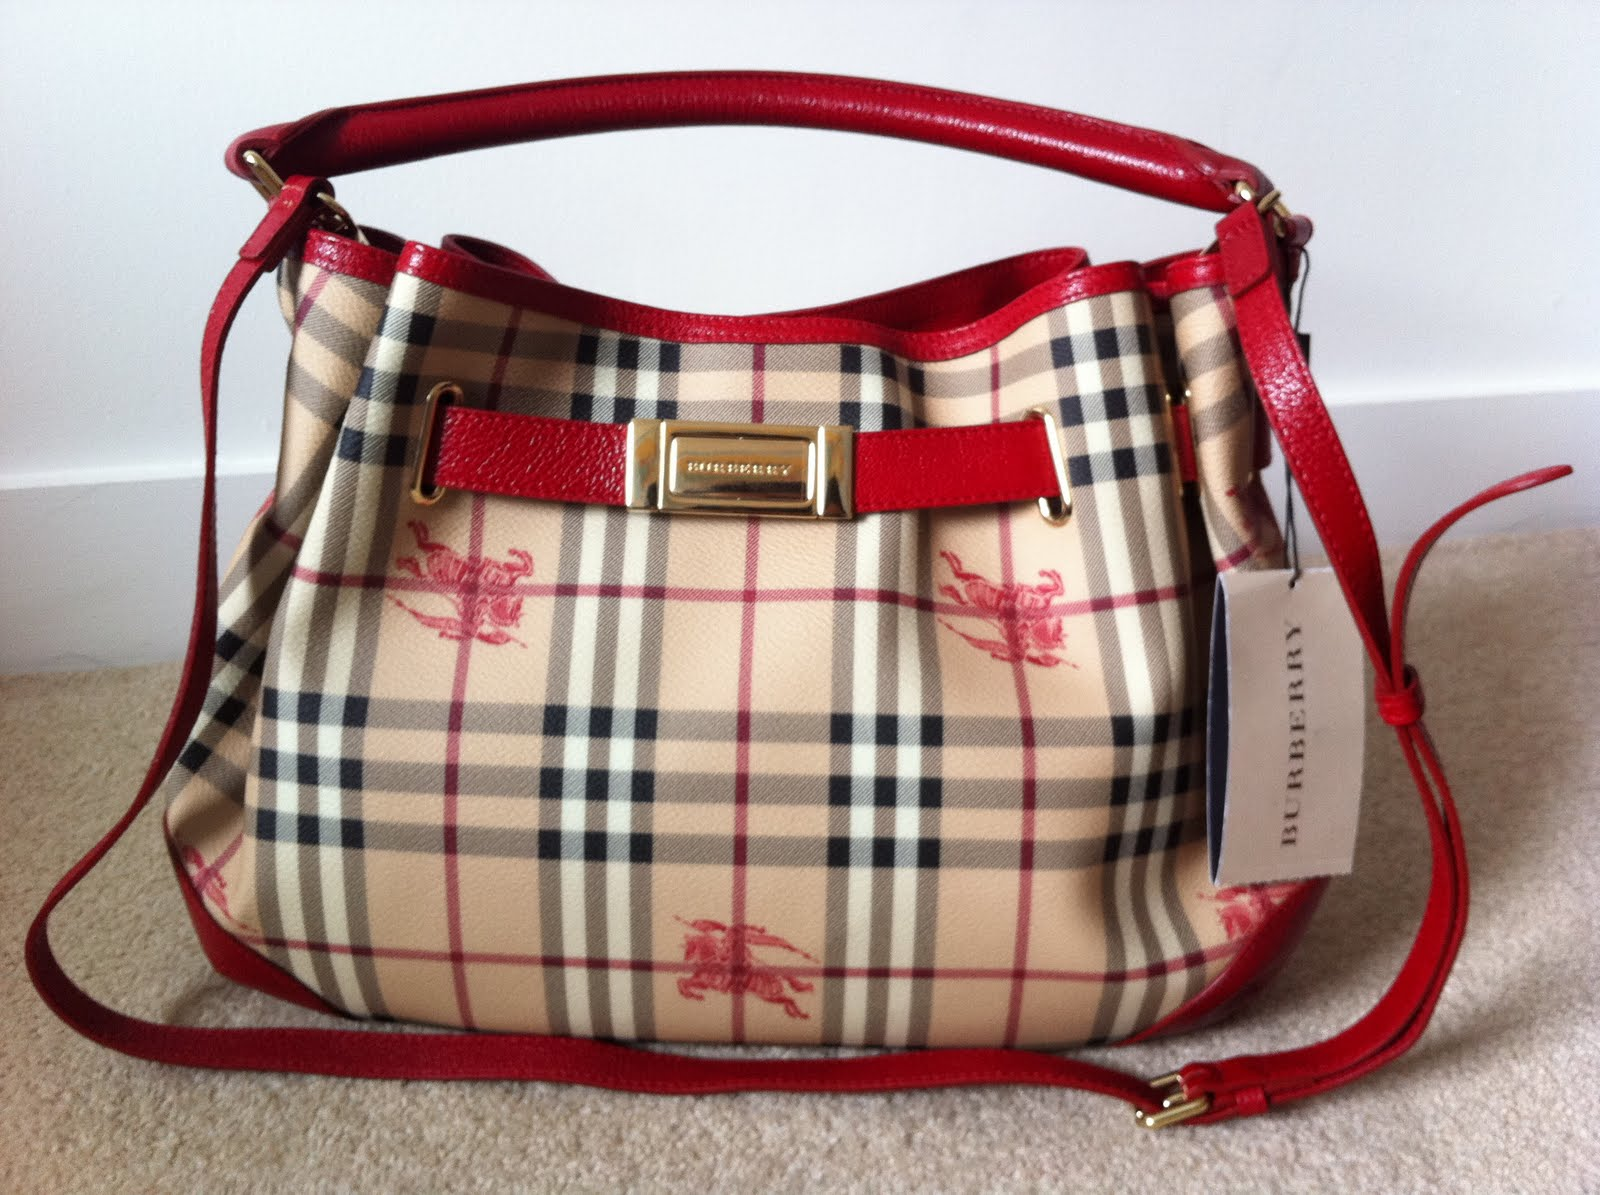 Discounted Genuine Handbags  (New) Authentic Burberry Hobo Bag For Sale 147aa88bb4038